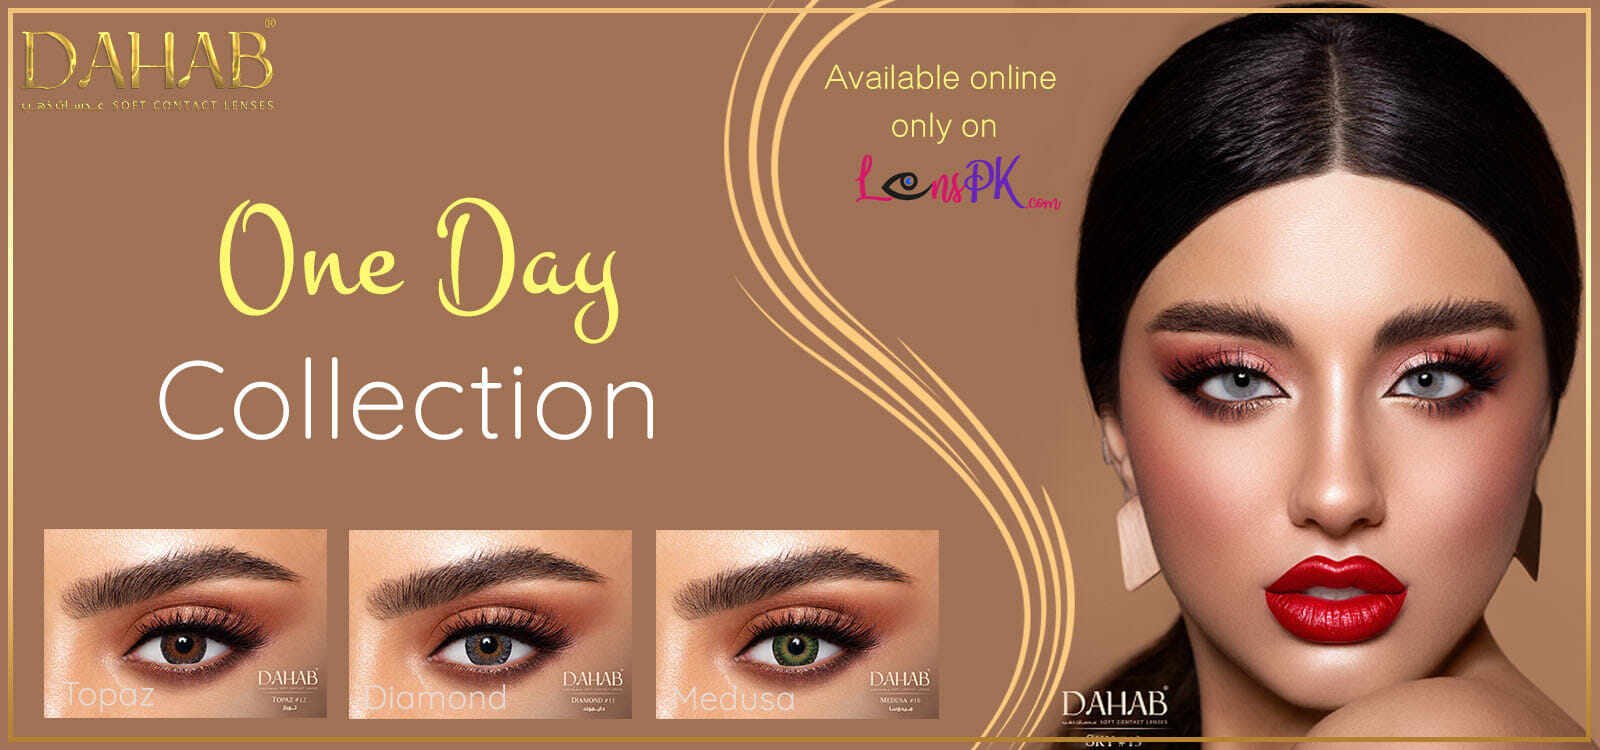 Buy Dahab Contact Lenses - One Day Collection - lenspk.com